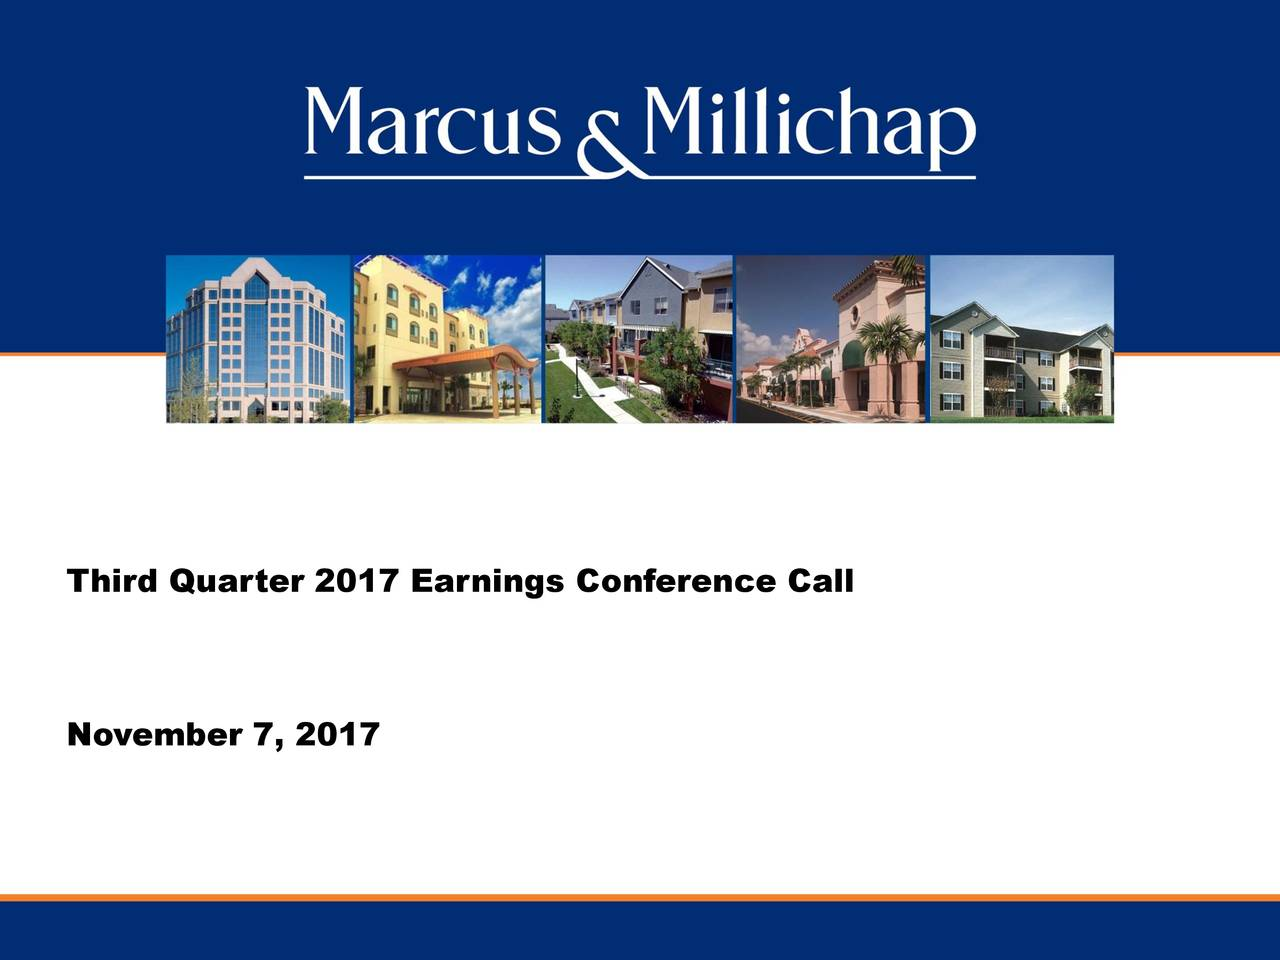 Marcus and millichap ipo date